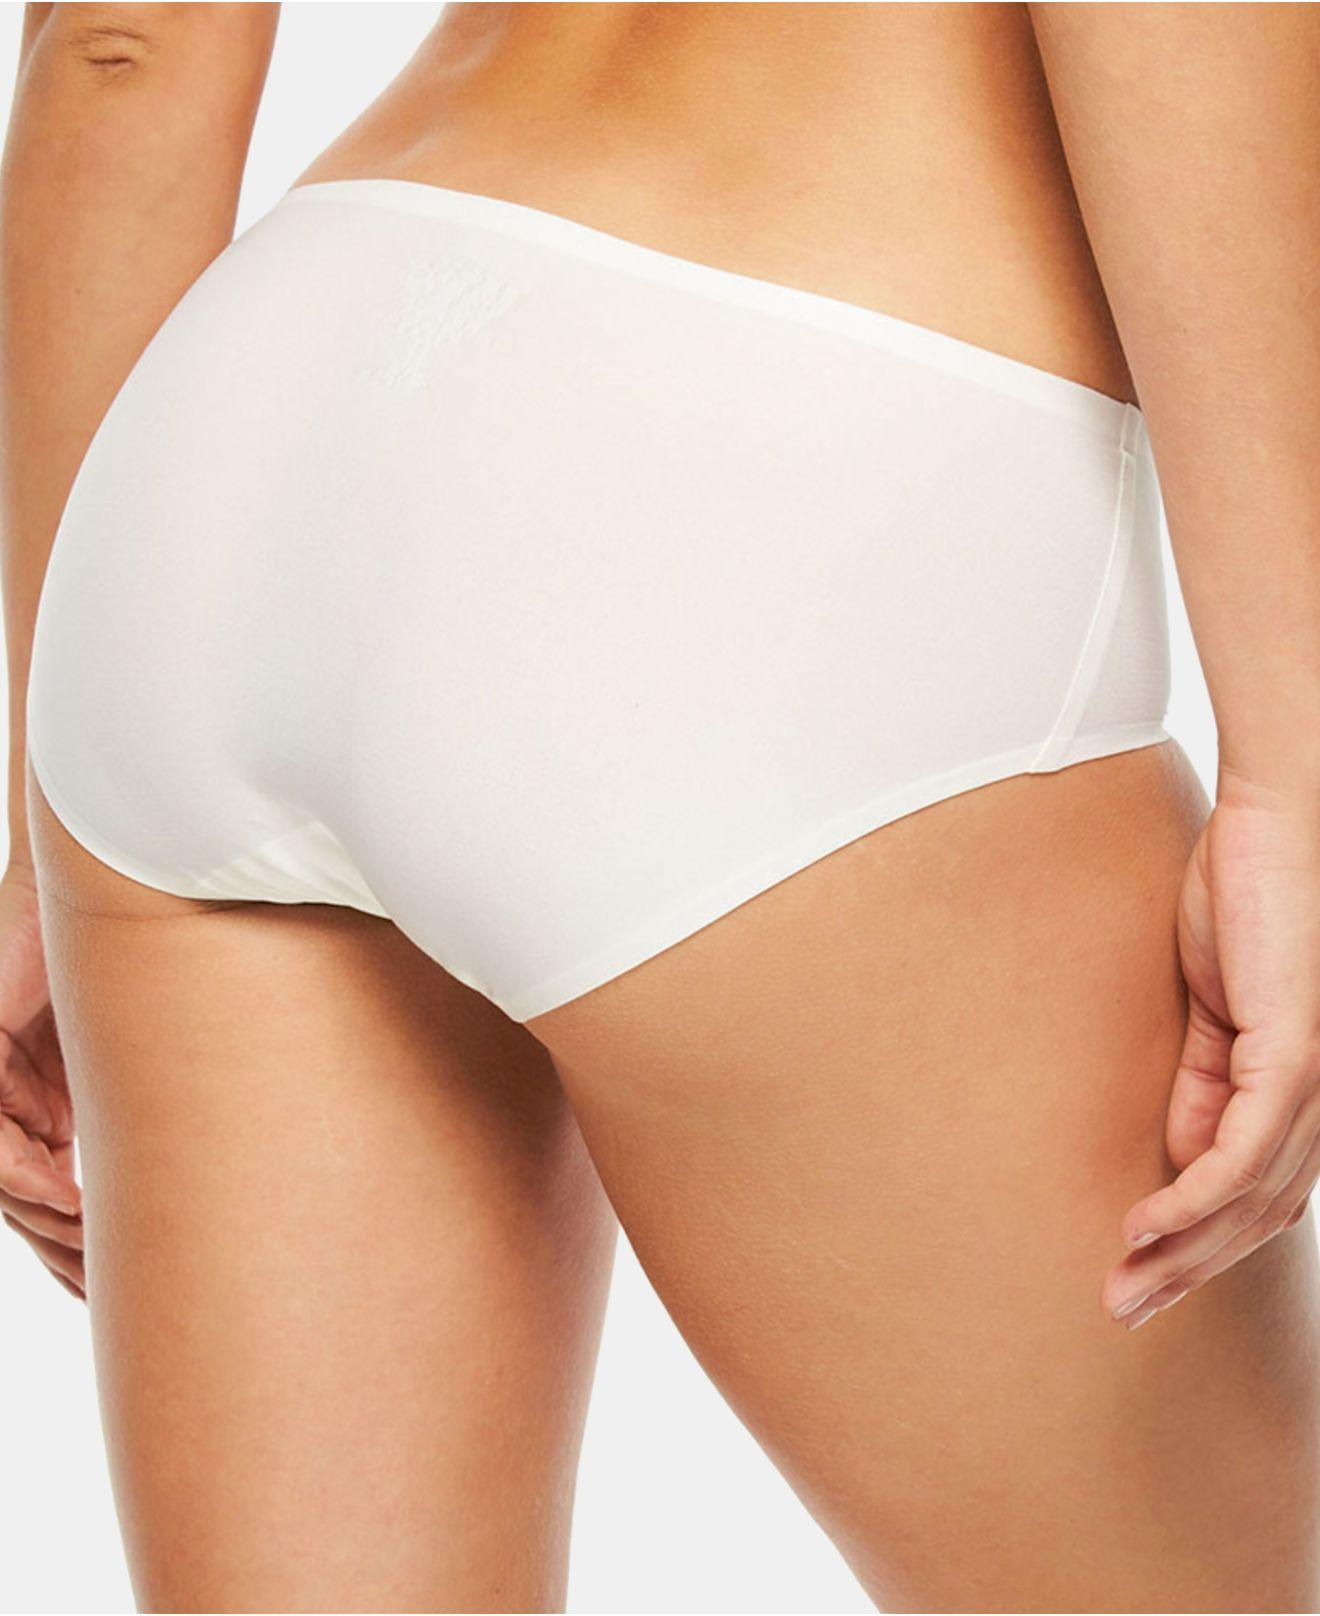 c3c7ceb6ccfb Lyst - Chantelle One Size Seamless Hipster 2644 in White